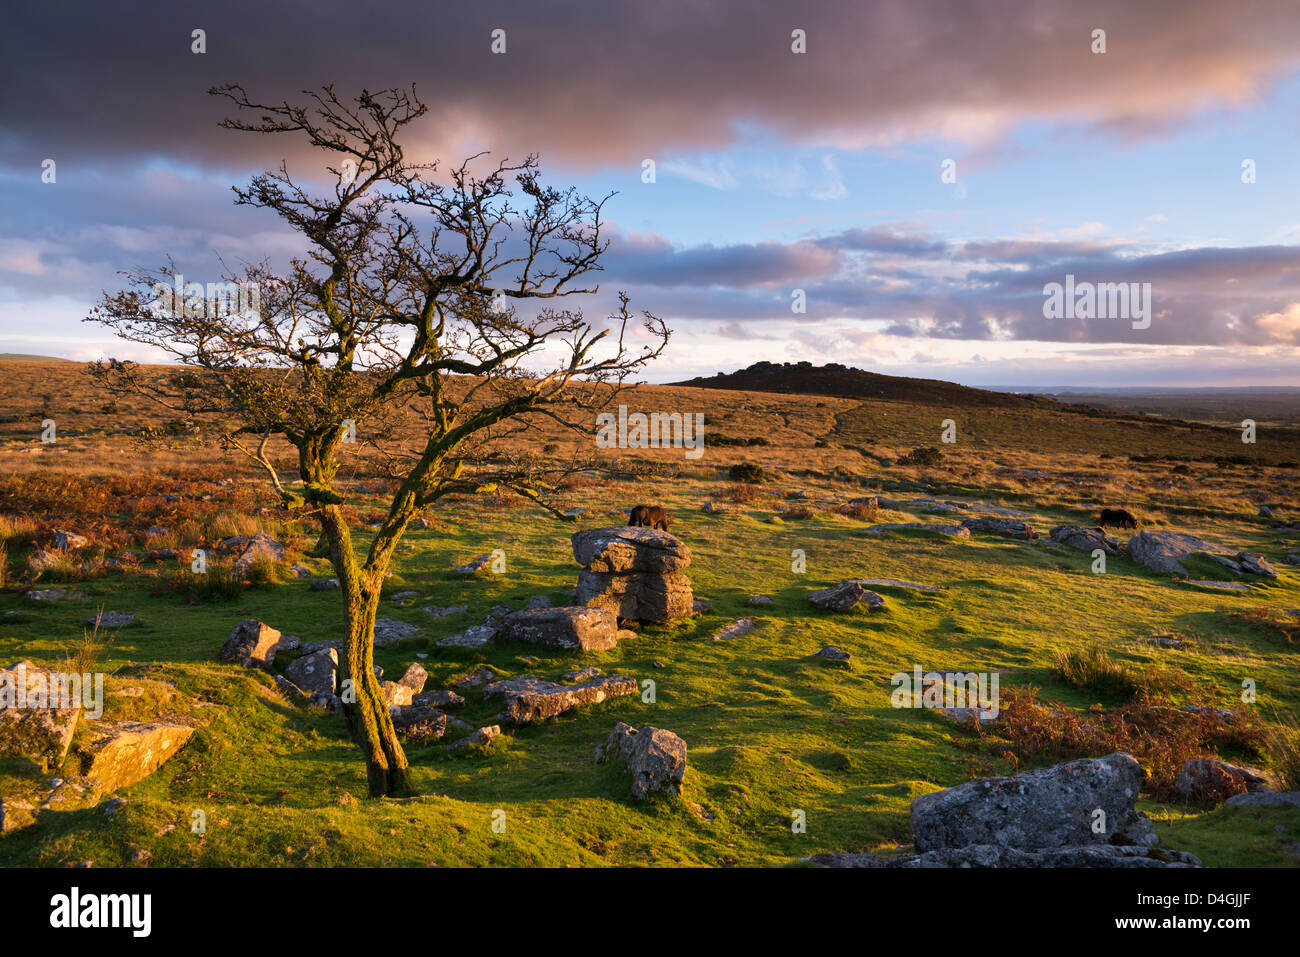 Looking to Pew Tor from Feather Tor, Dartmoor, Devon, England. Autumn (September) 2012. - Stock Image